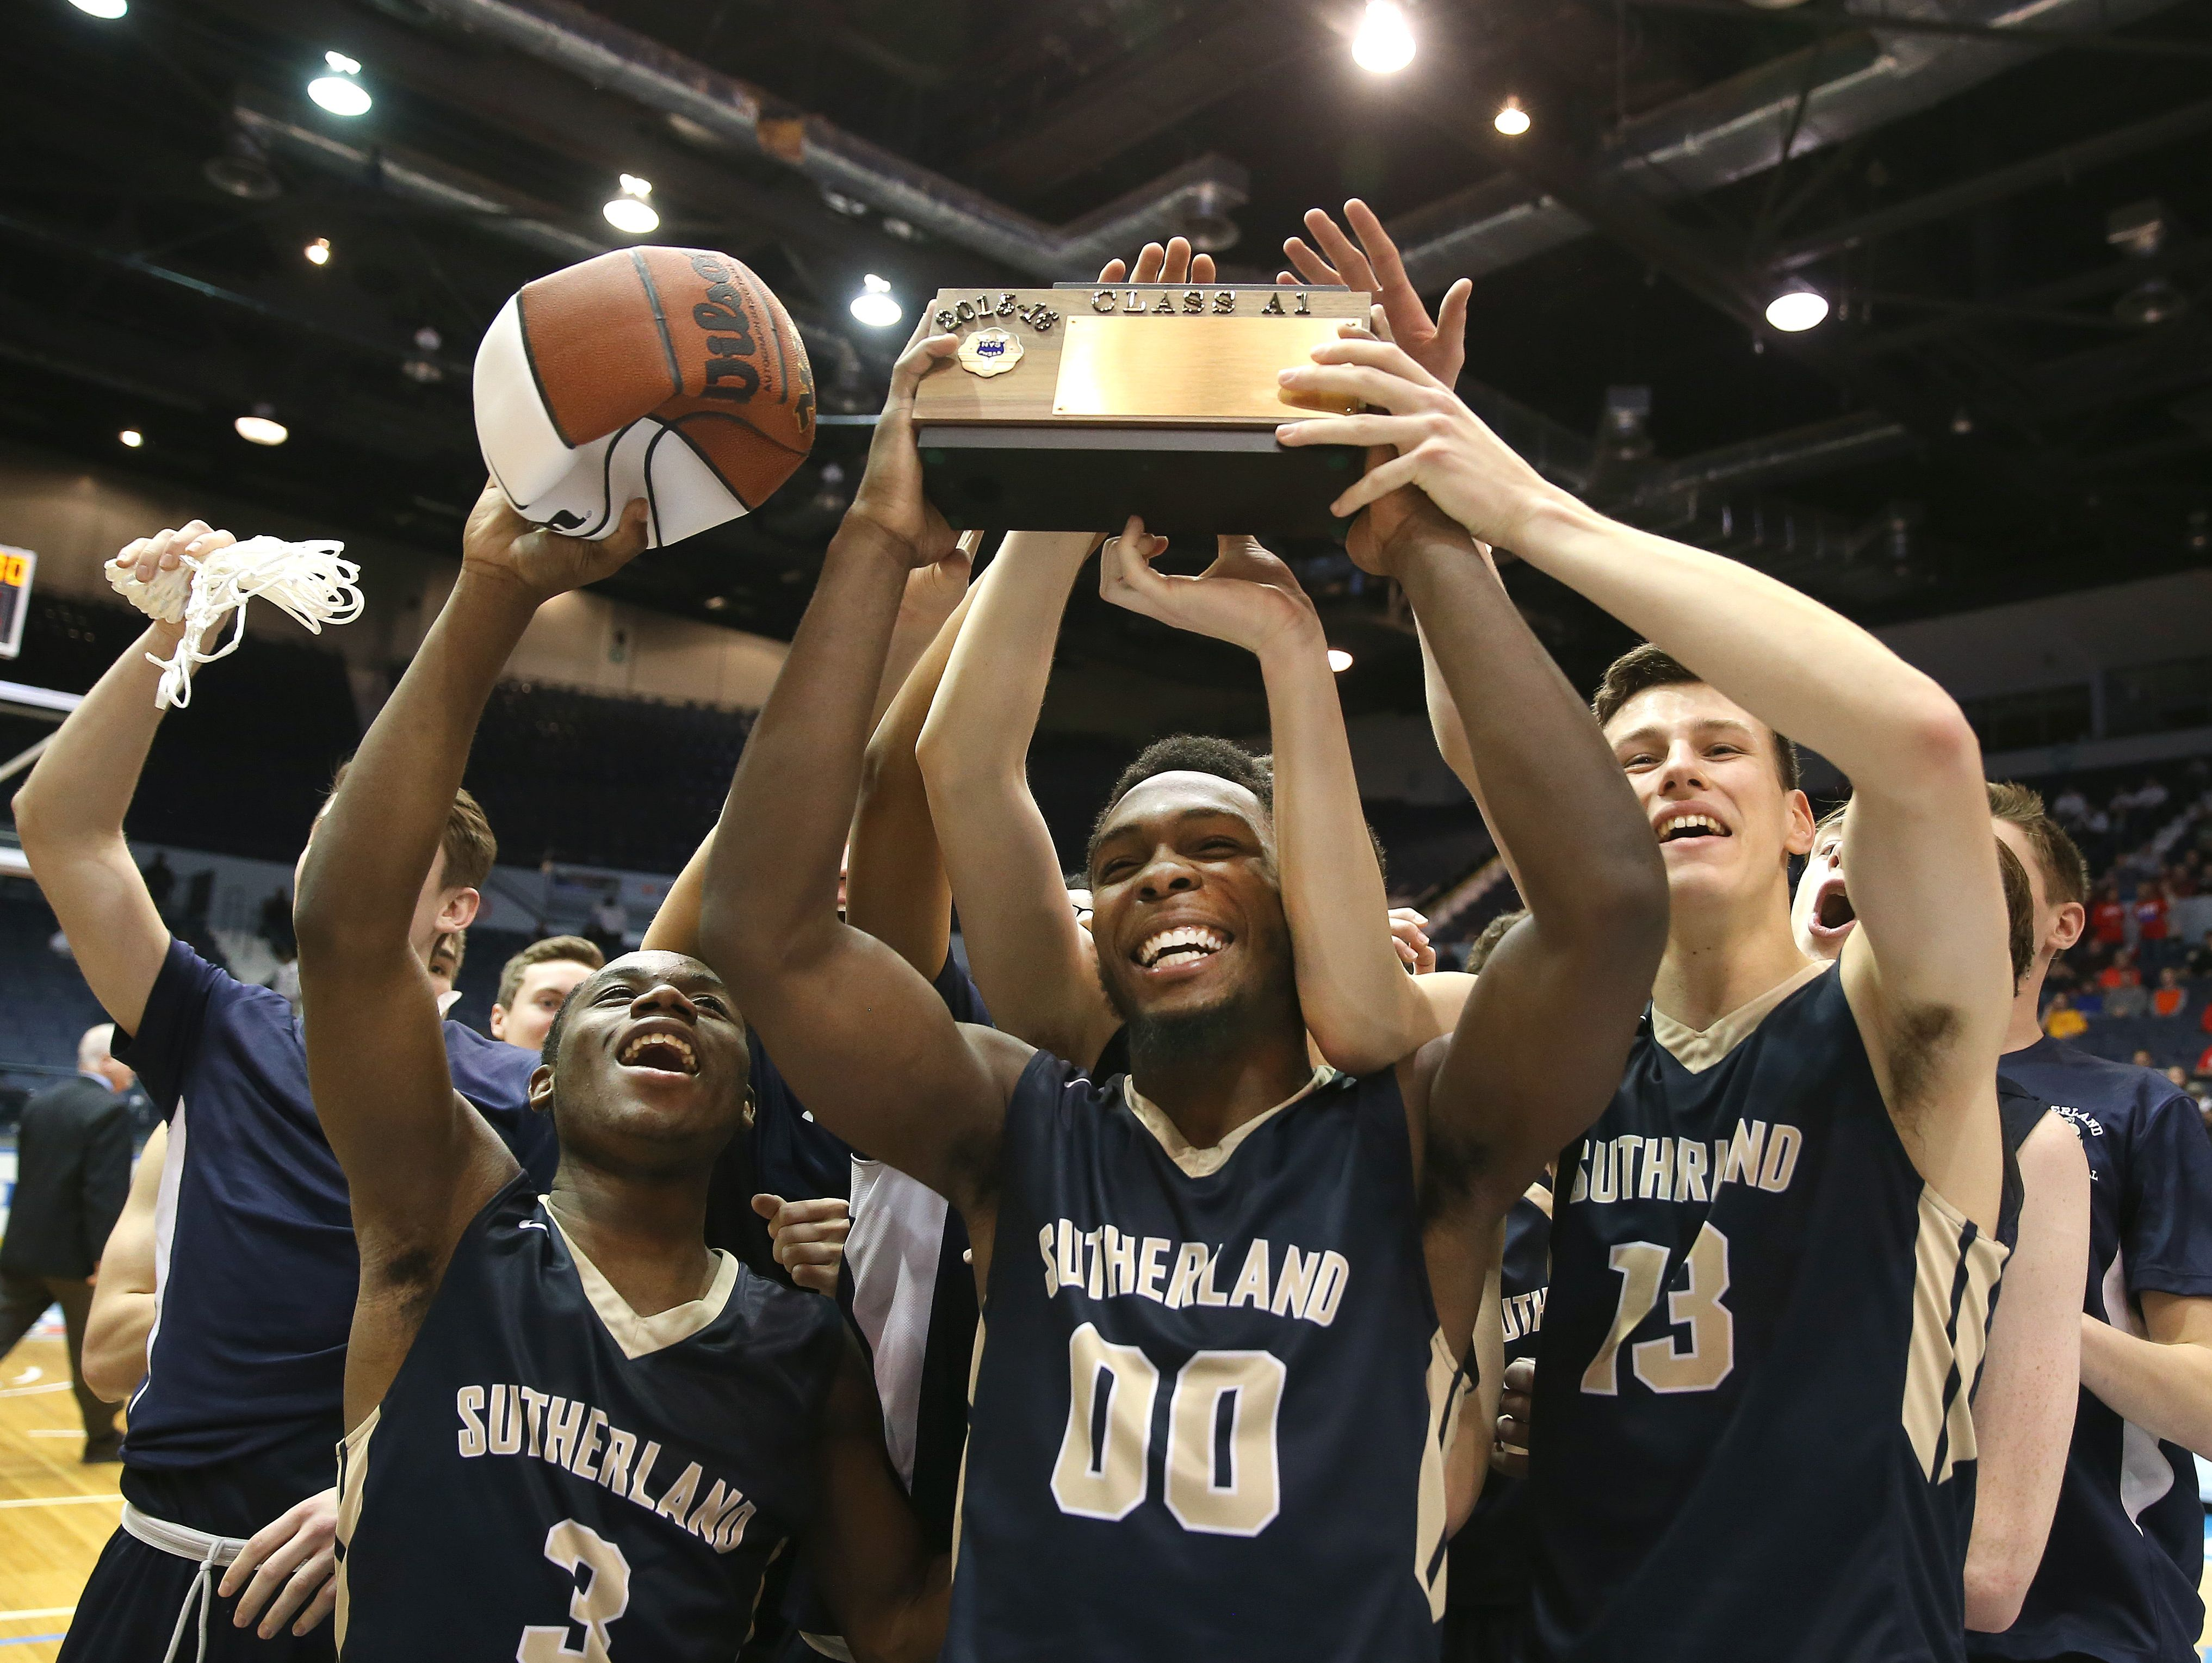 Pittsford Sutherland players celebrate their win over Greece Athena to capture the Class A1 championship.